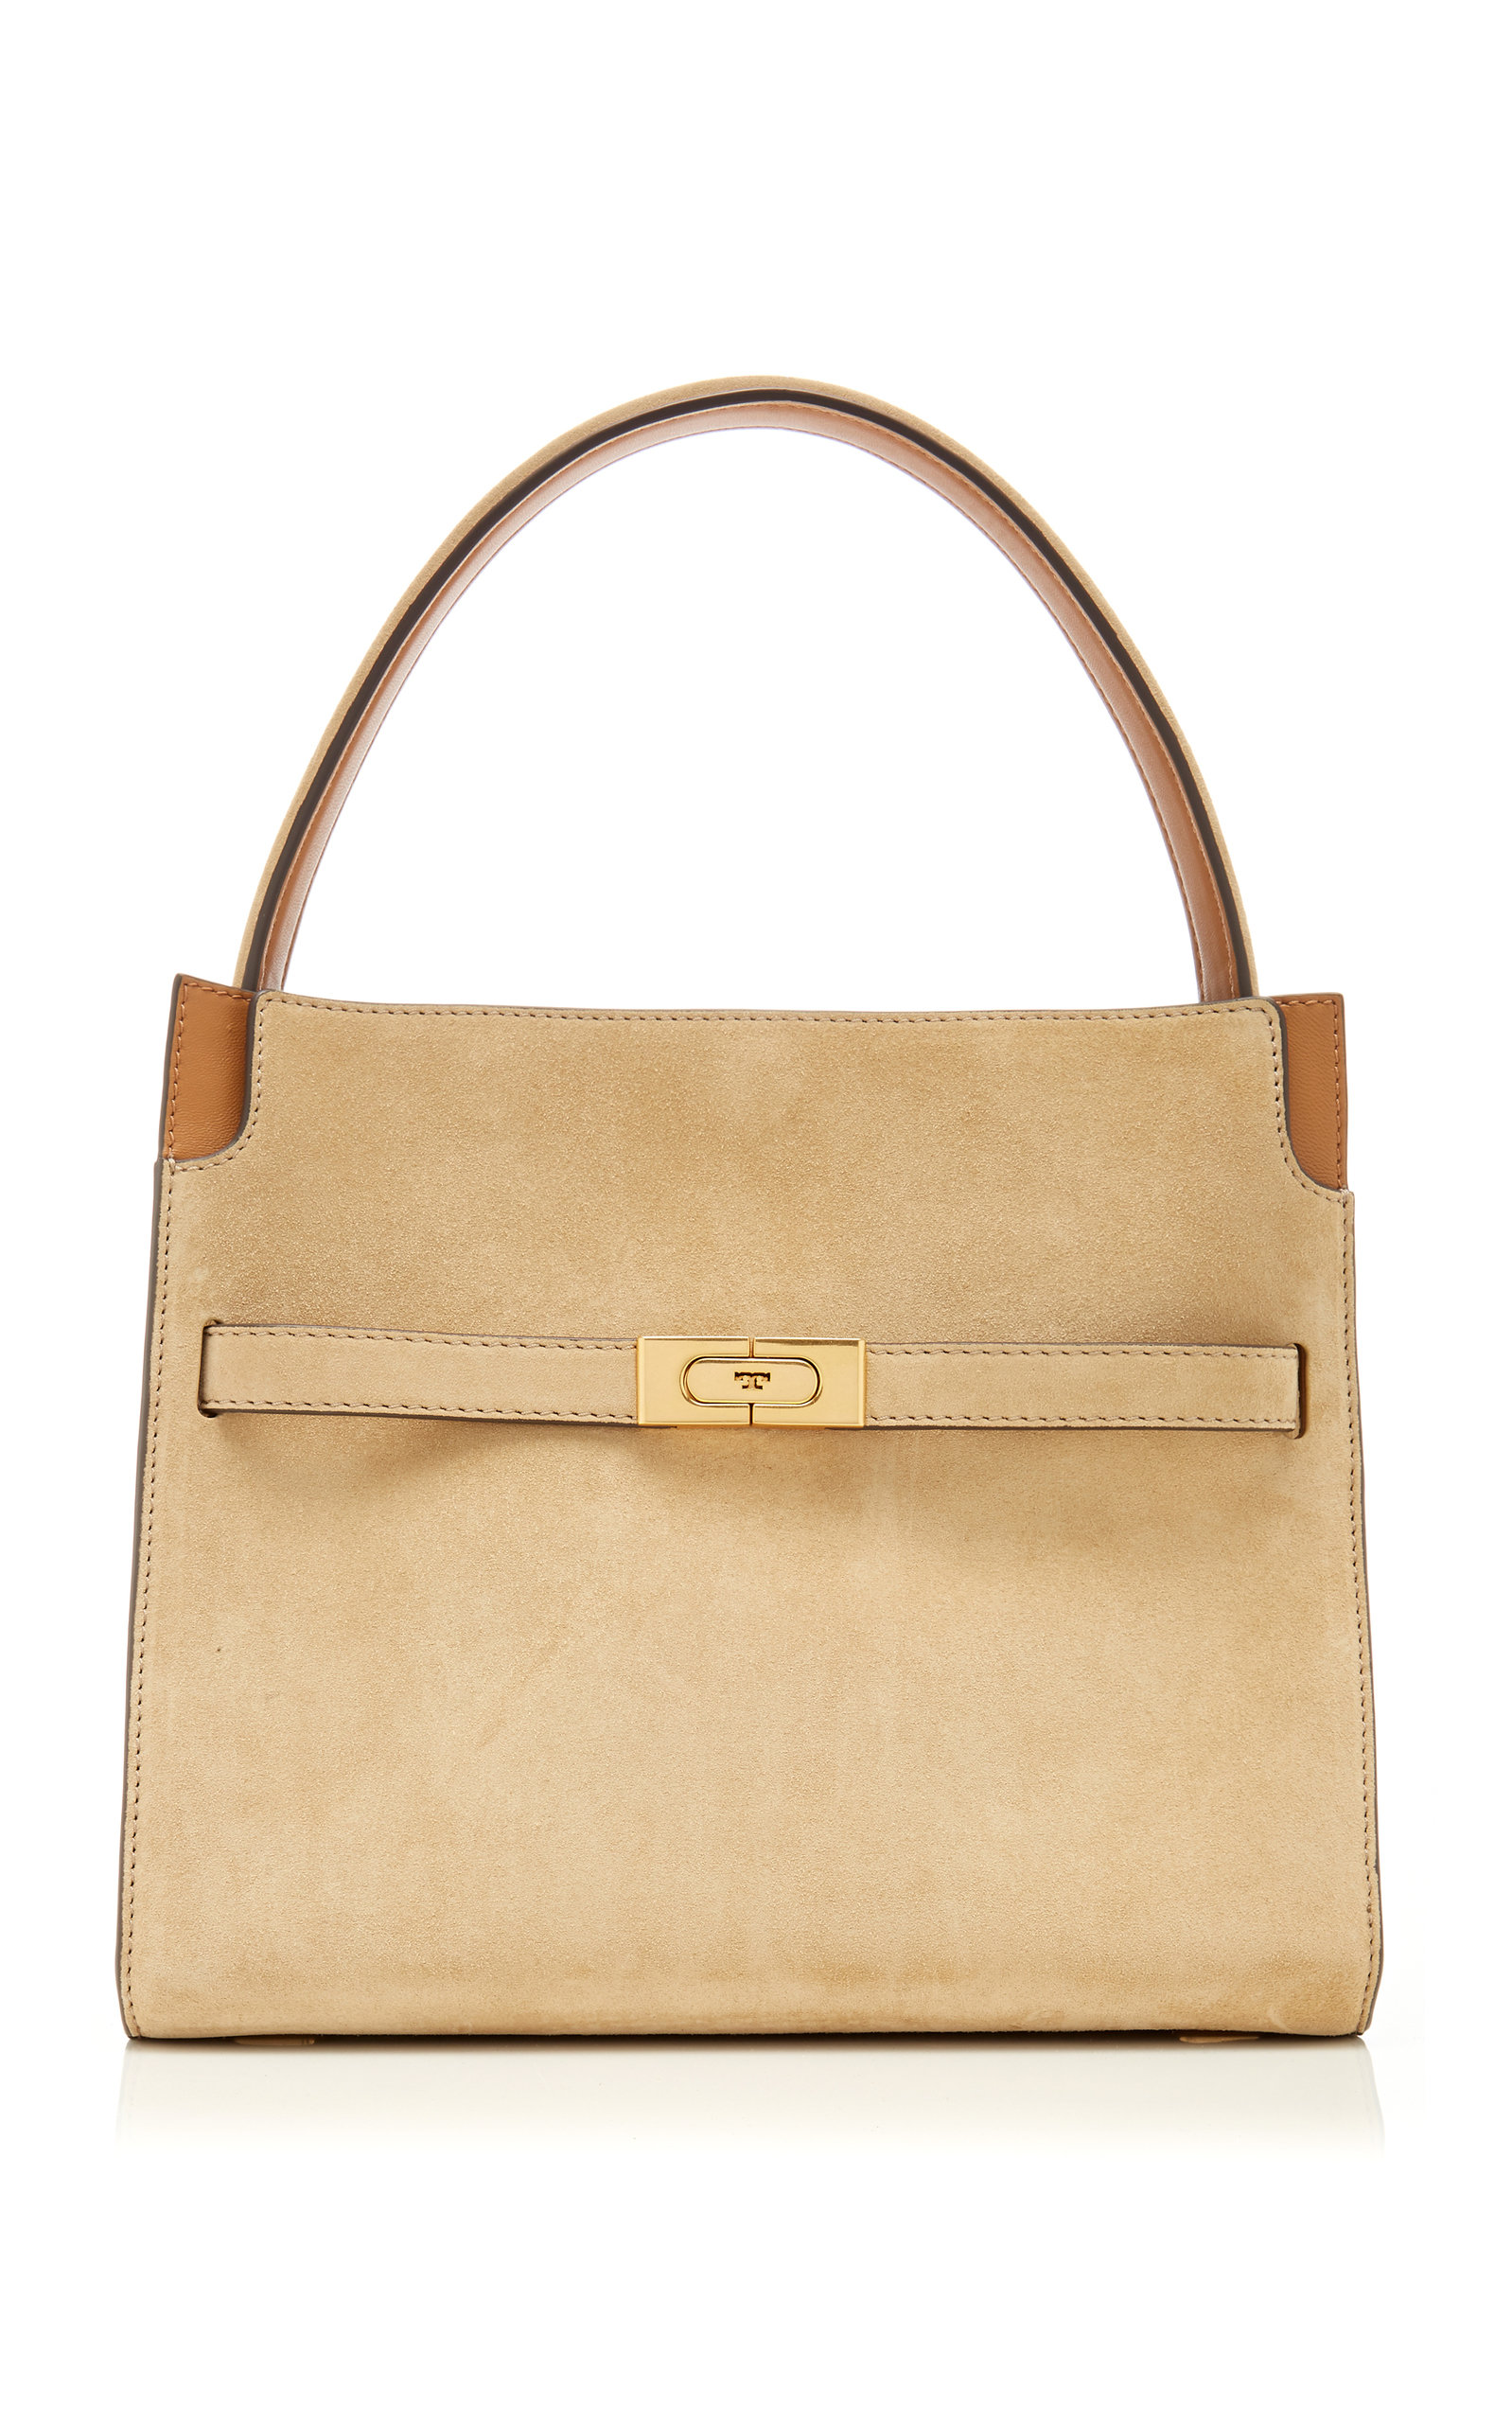 27badf80cc68 Lee Radziwill Small Leather Double Bag by Tory Burch | Moda Operandi